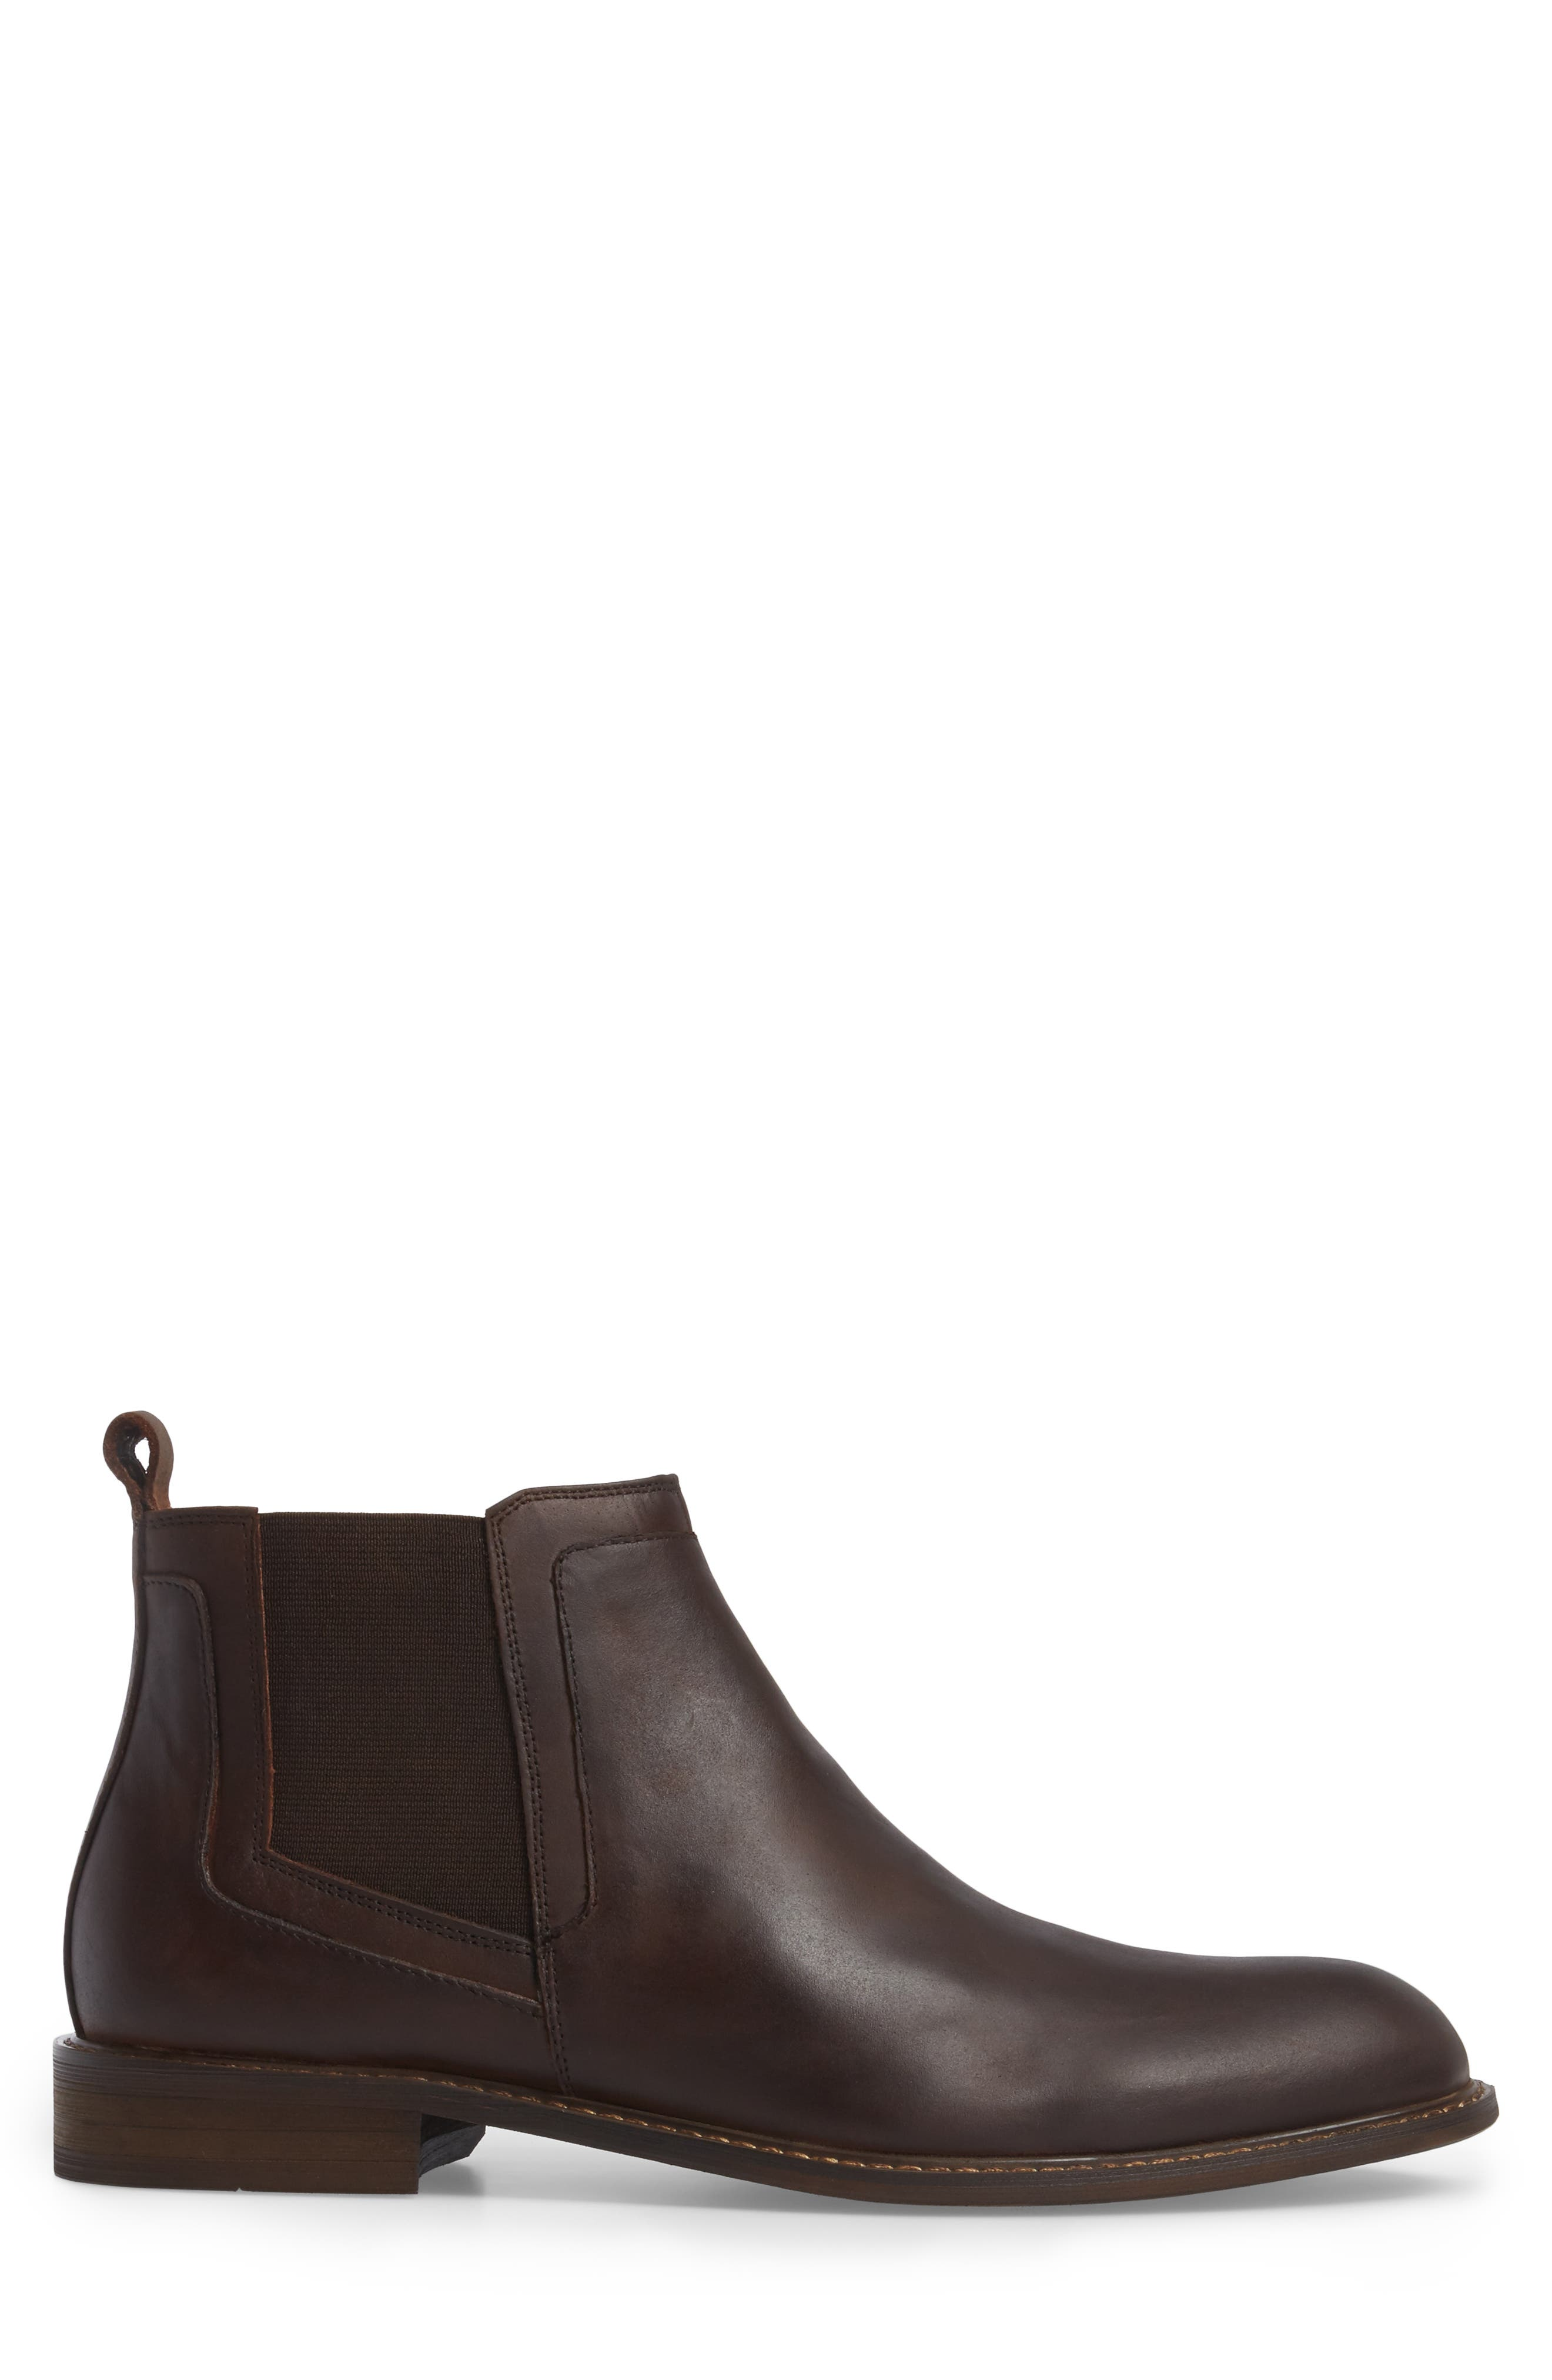 Chlesea Boot,                             Alternate thumbnail 3, color,                             Brown Leather